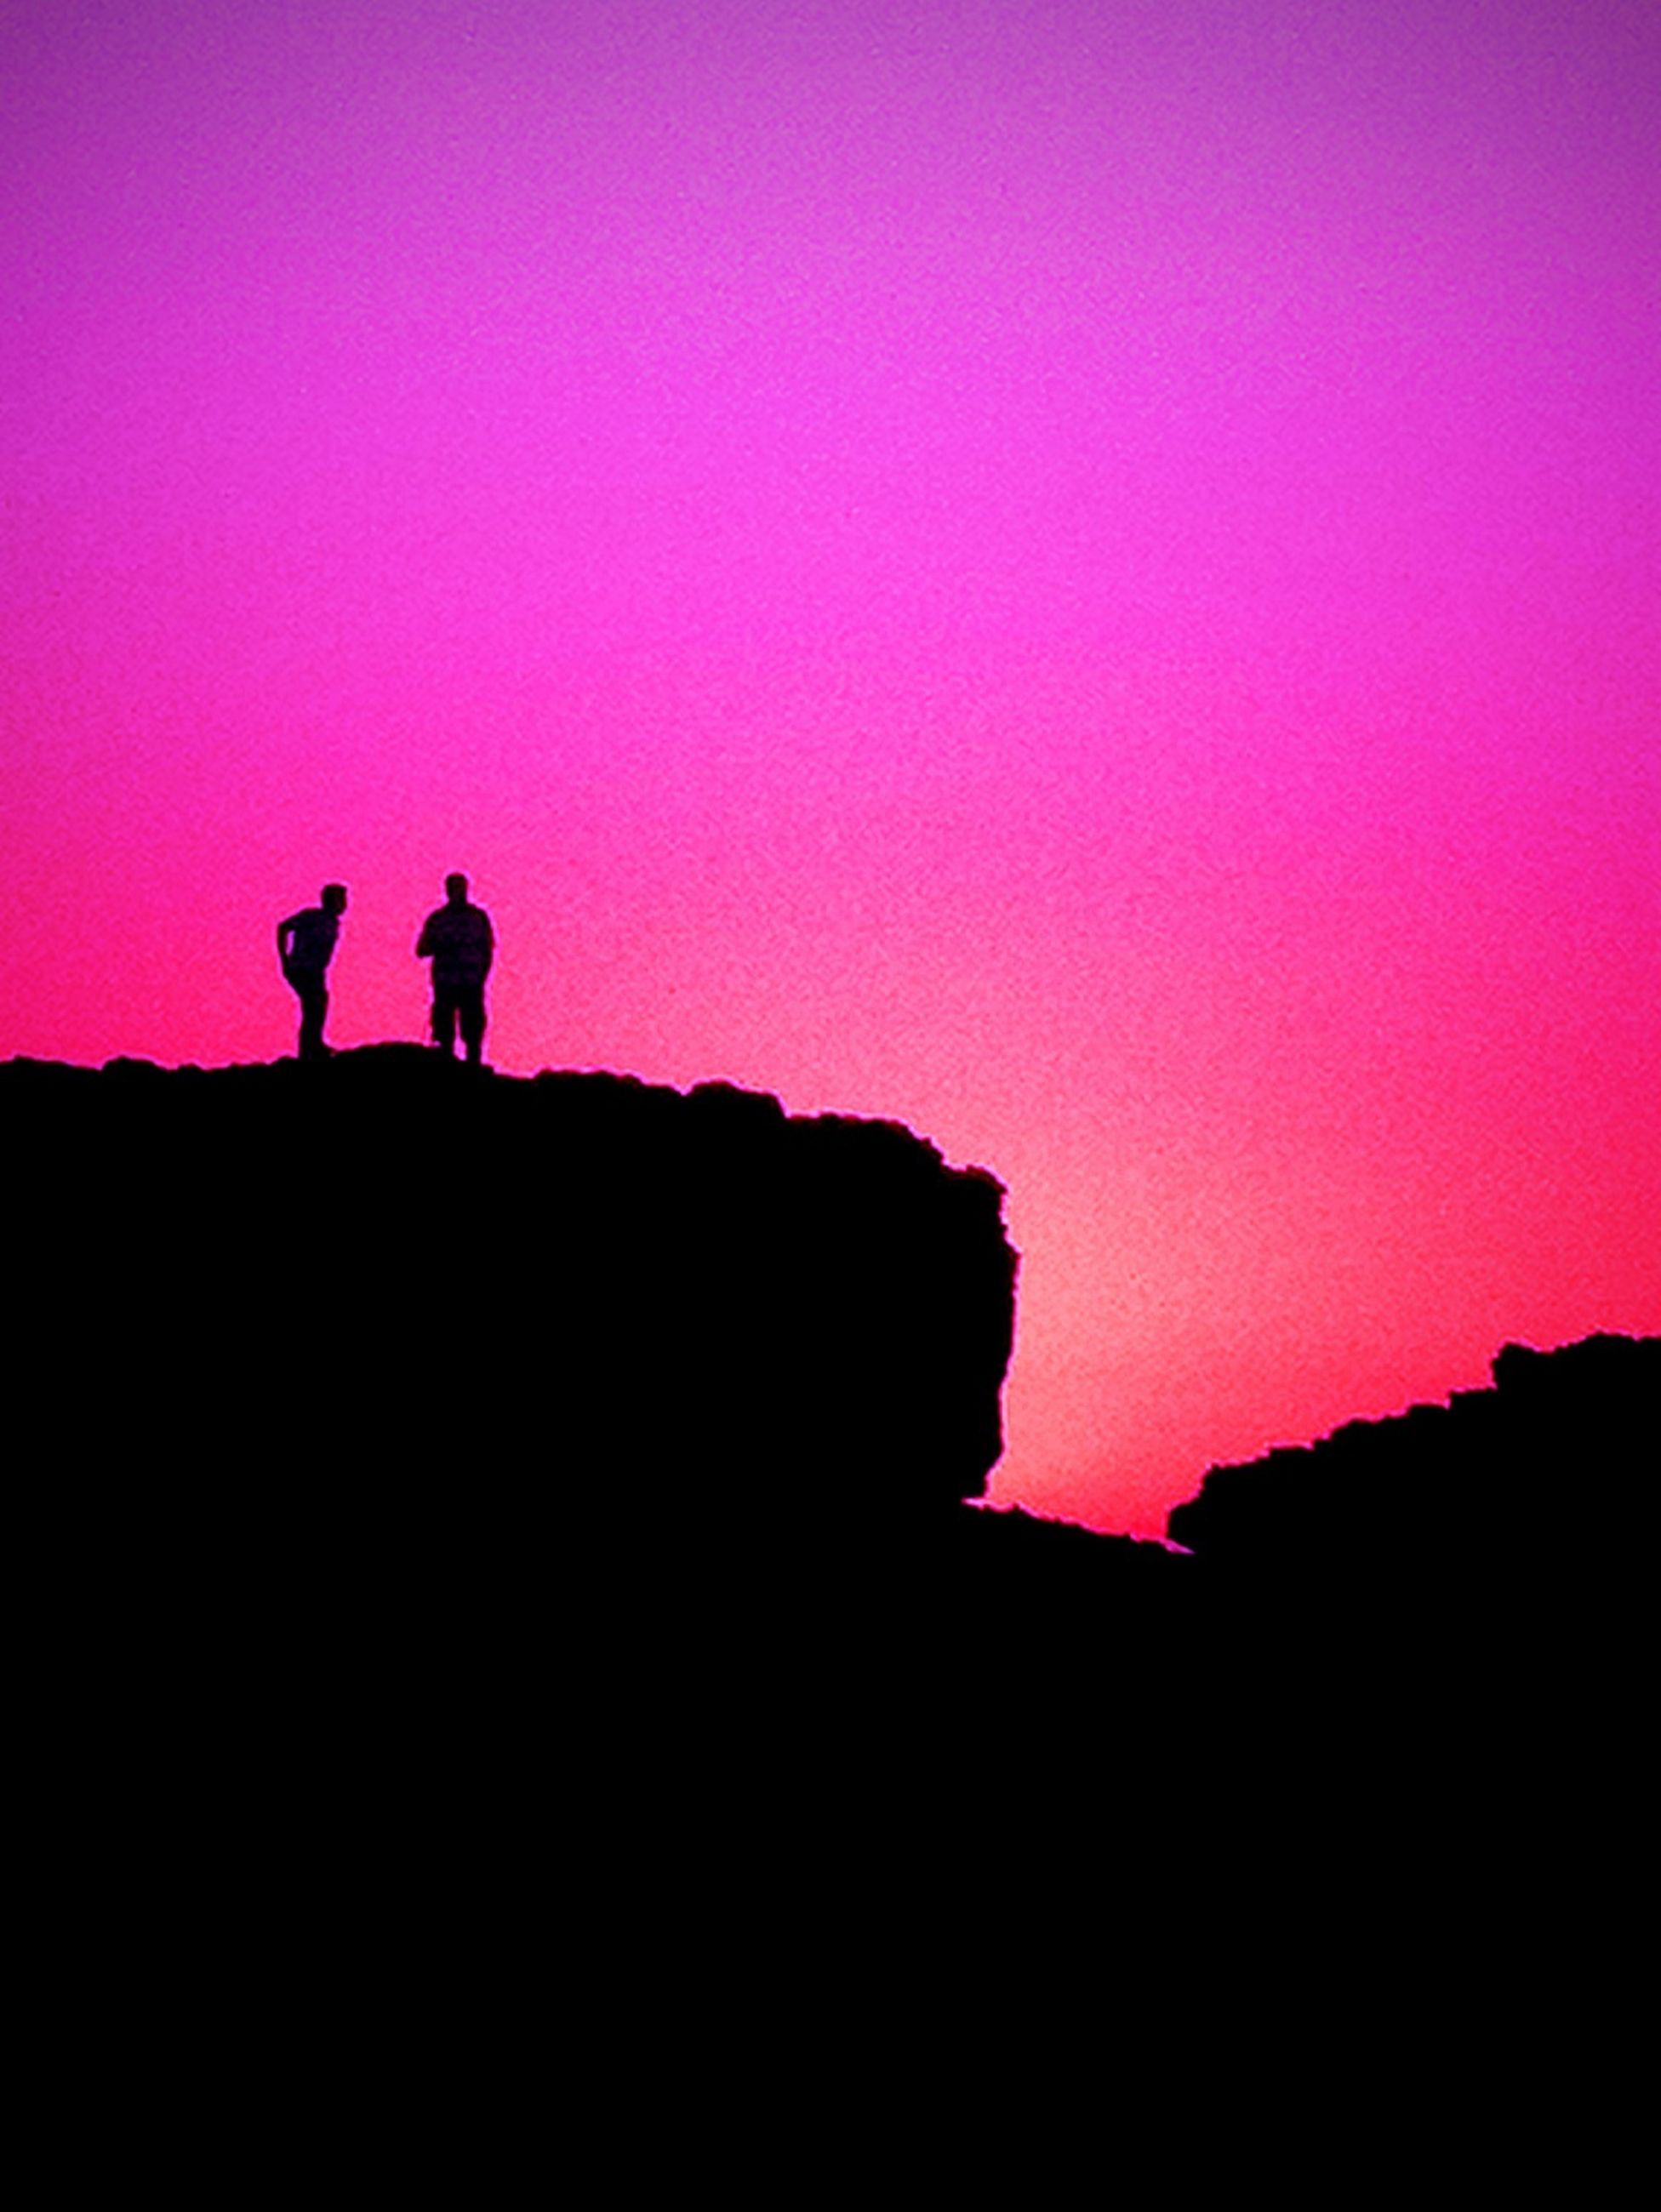 silhouette, lifestyles, men, copy space, leisure activity, sunset, standing, person, full length, togetherness, clear sky, sky, outline, dusk, rear view, unrecognizable person, red